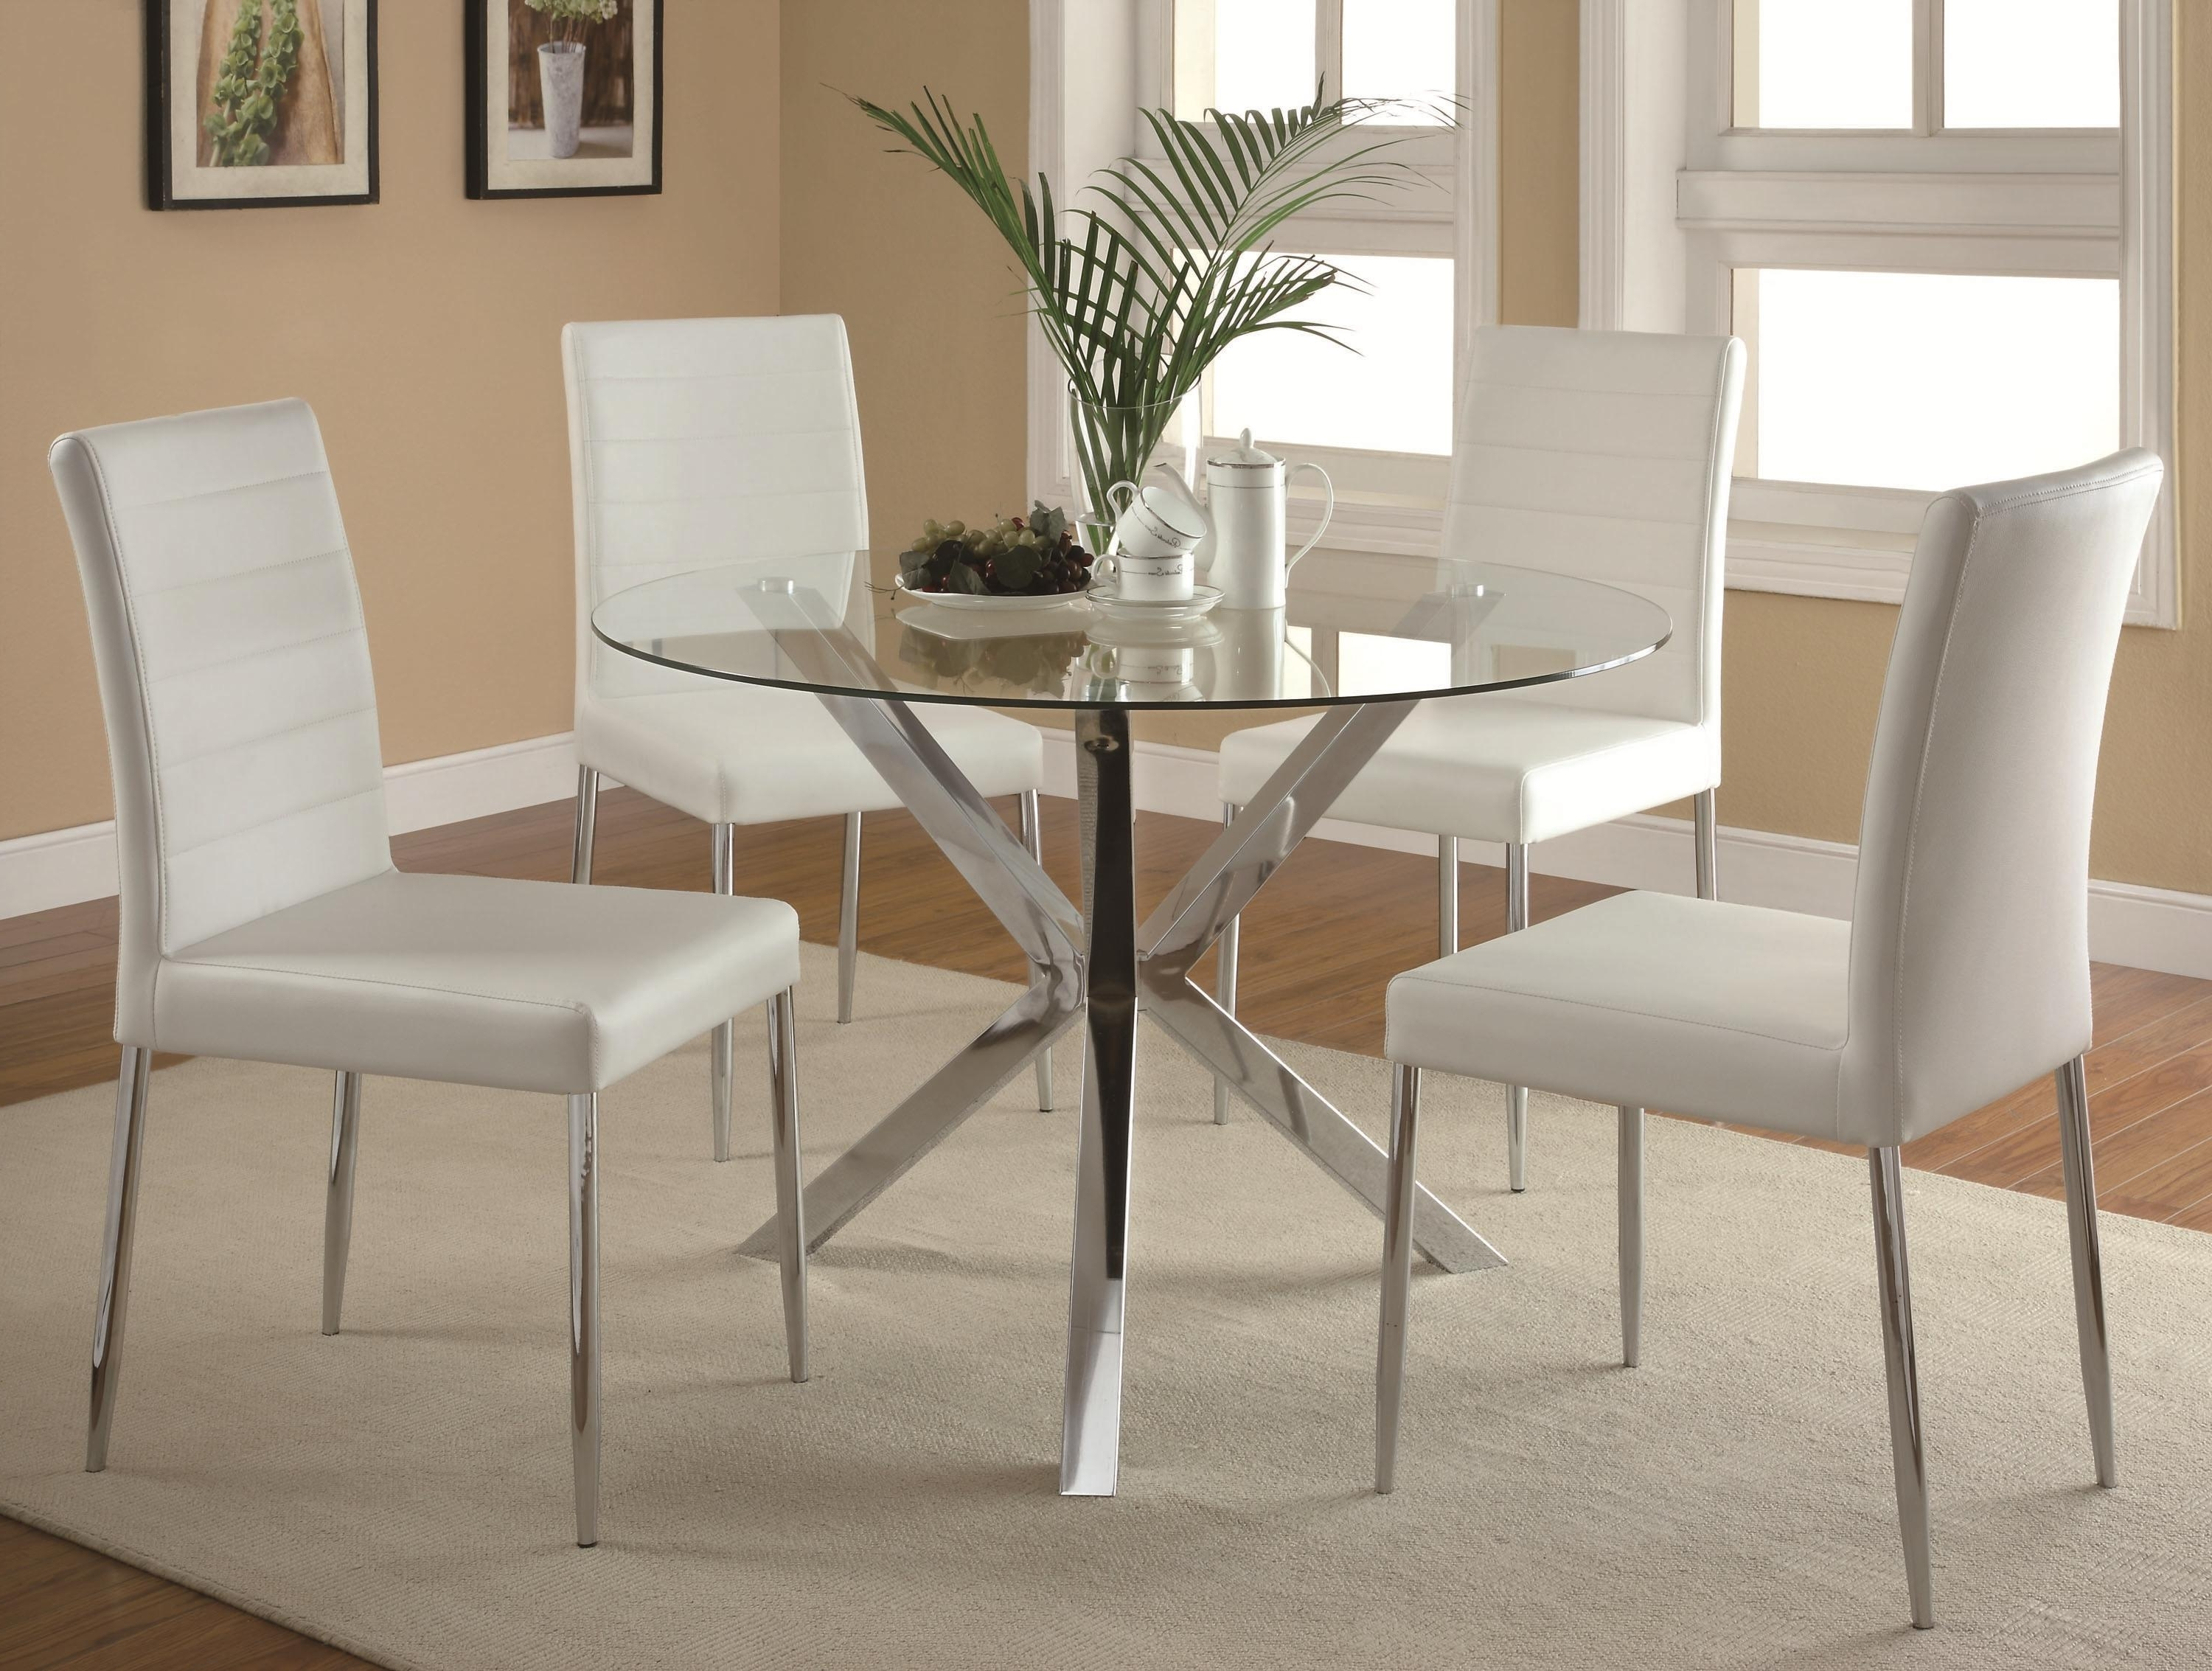 Most Popular Contemporary Base Dining Tables With Regard To Contemporary Glass Top Dining Table With Unique Chrome Base – Vance (View 16 of 25)